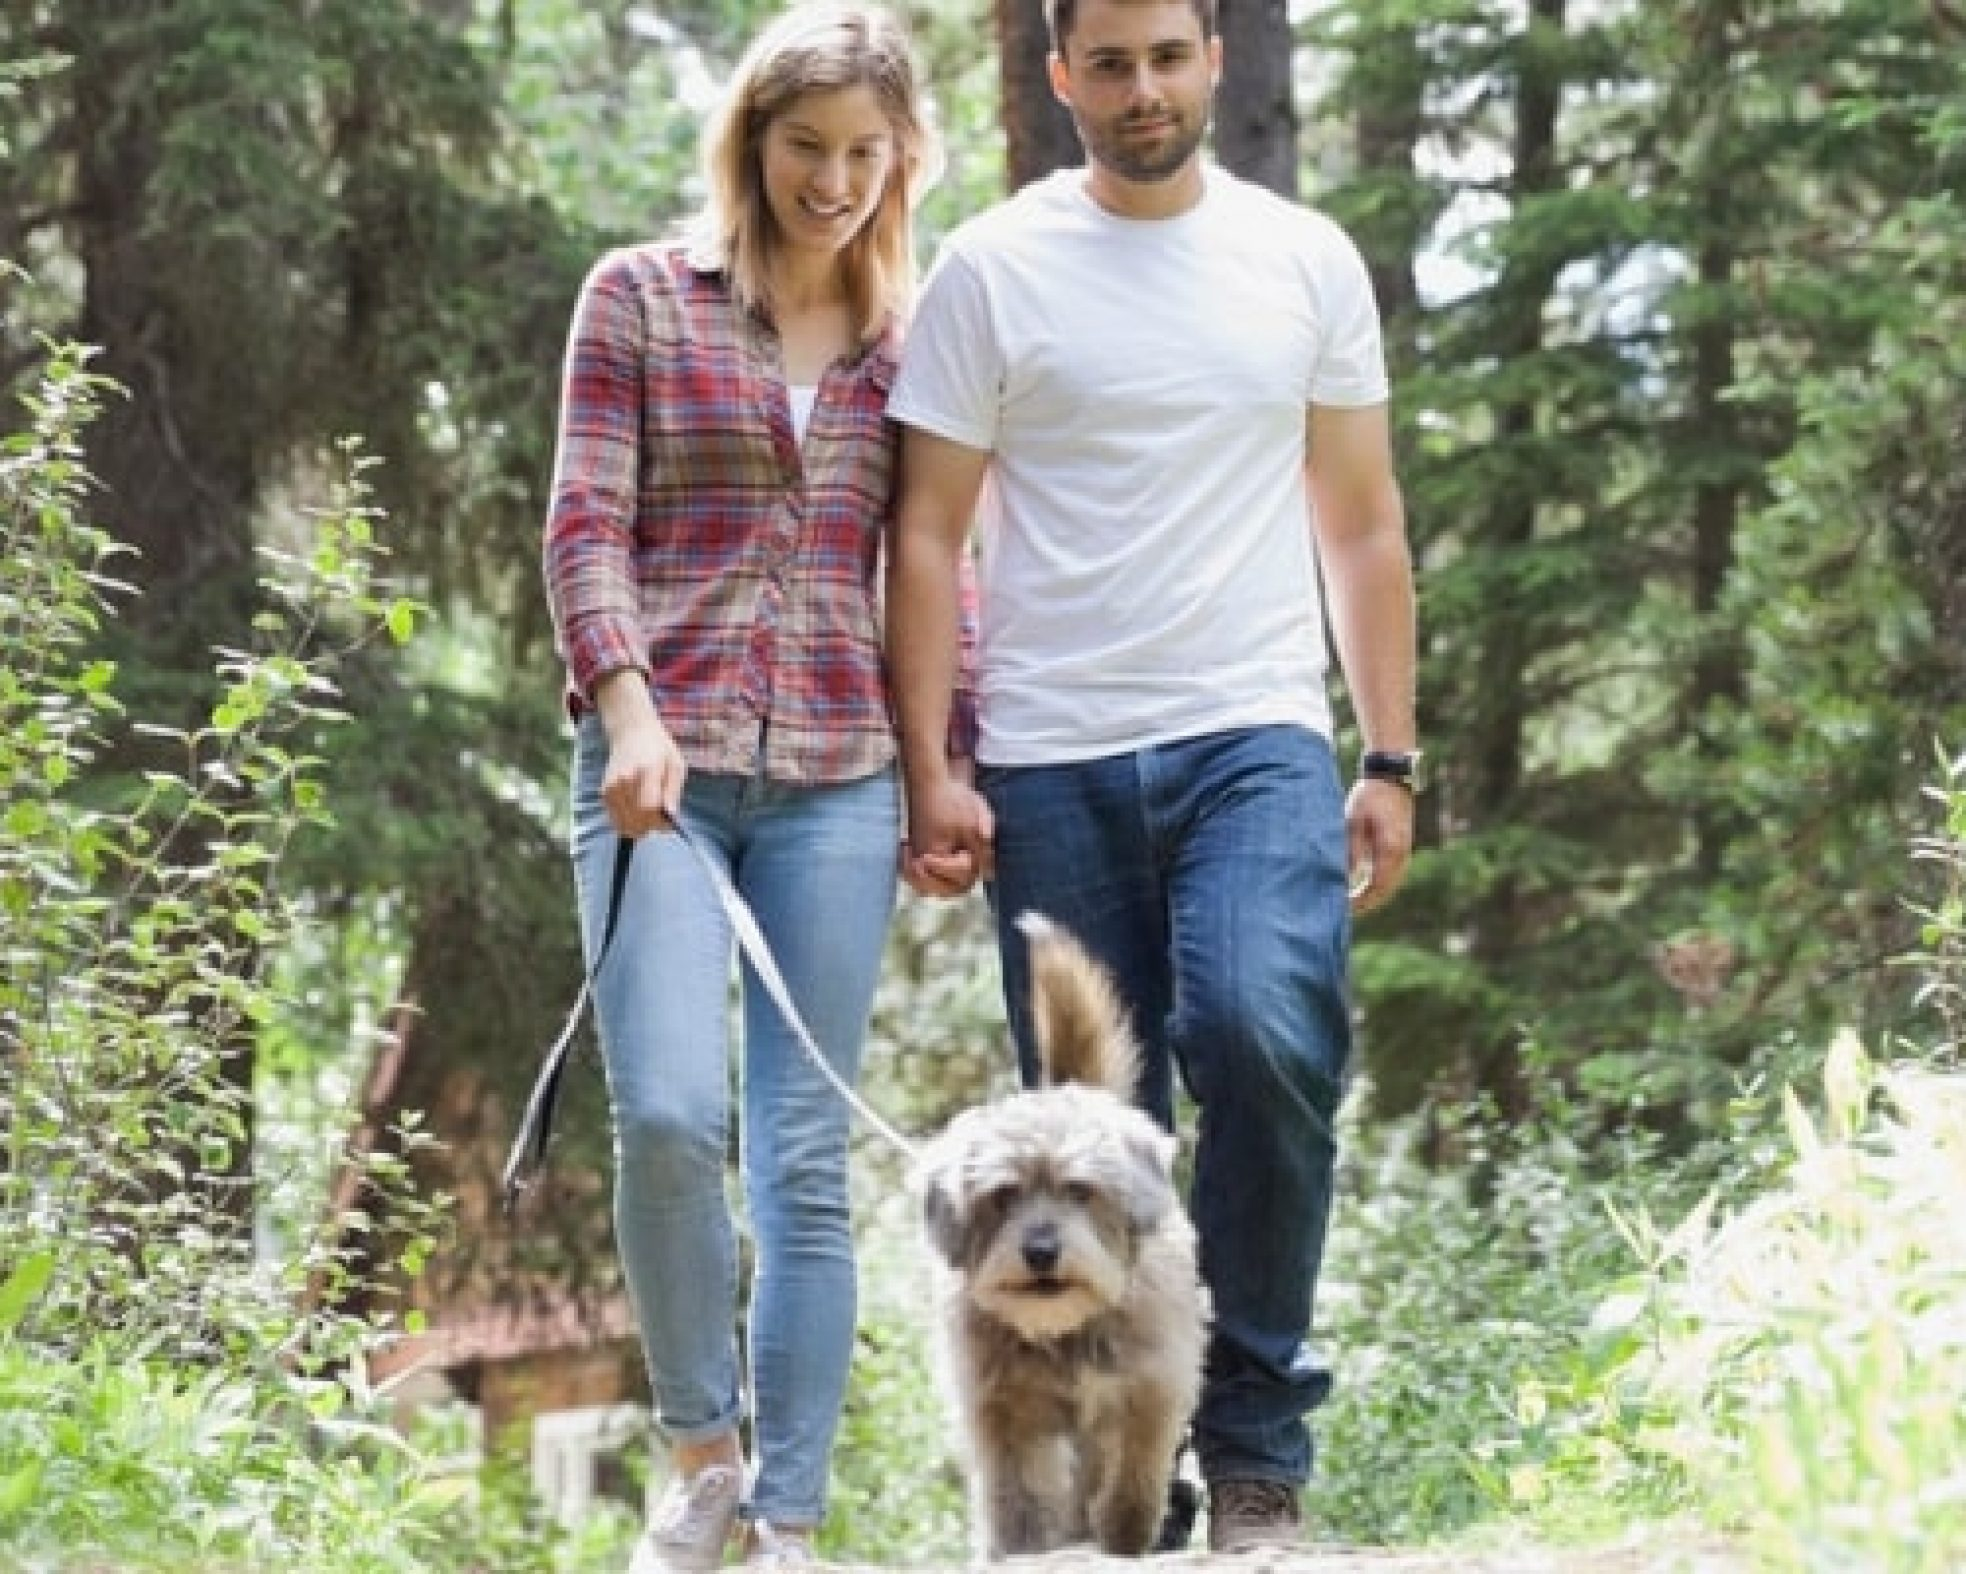 Couple walking dog in the woods